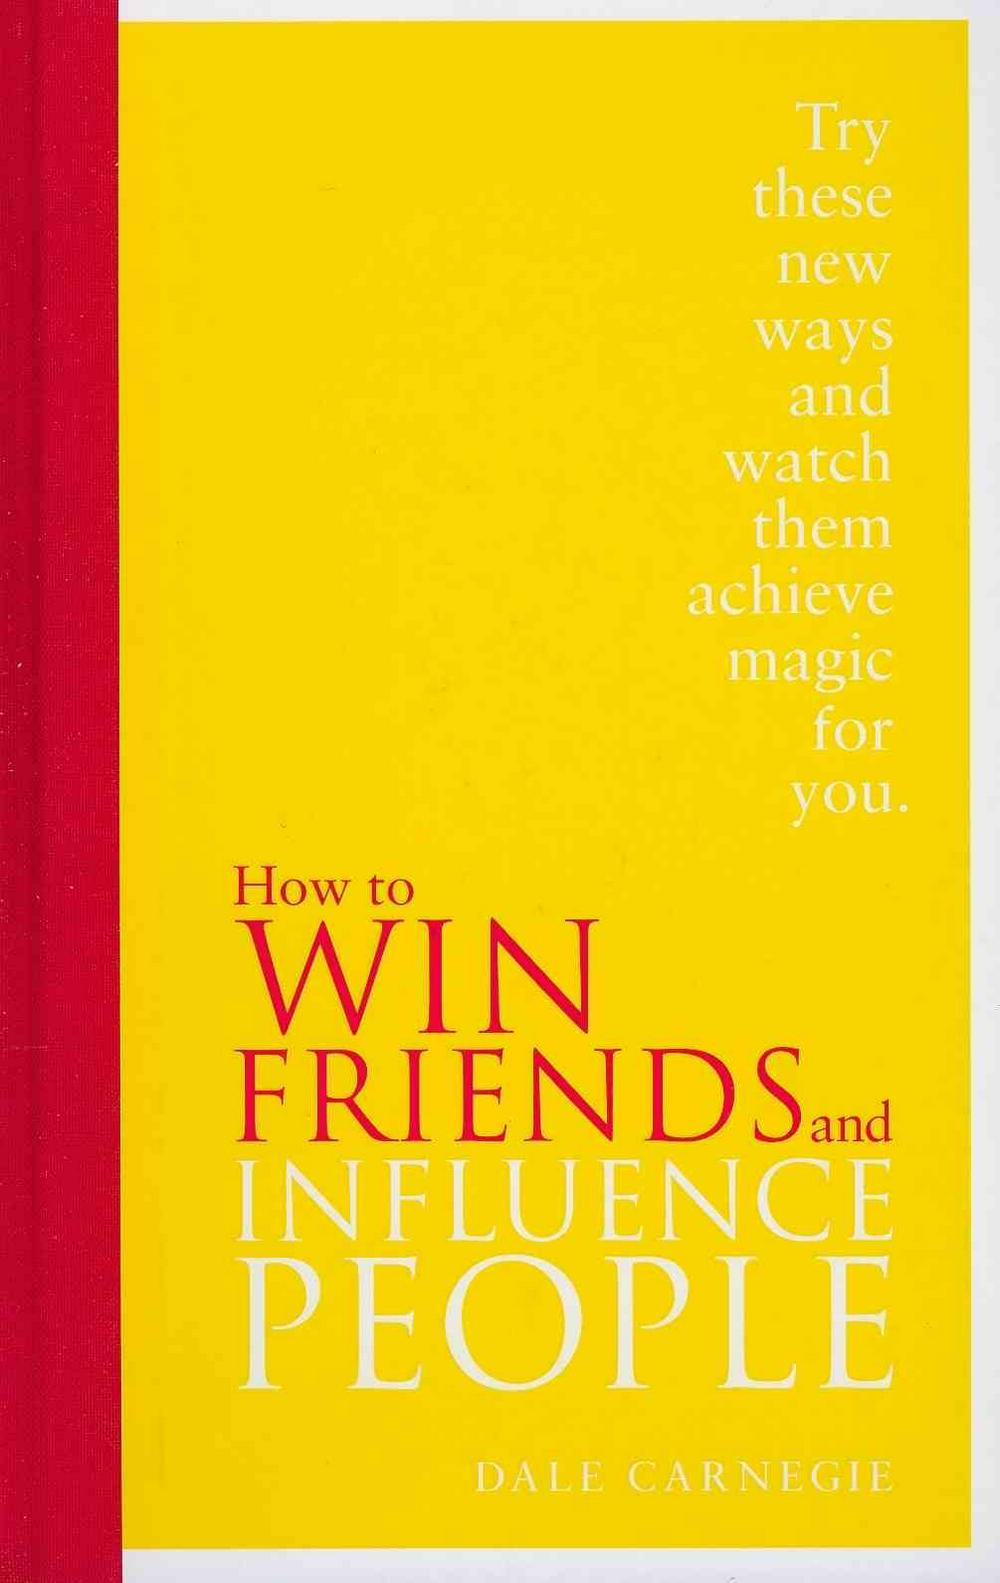 relating to the article how to win friends and influence people written by dale carnegie Dale carnegie's book how to win friends and influence people gave birth to the genre of self-help in this book, he lays out an effective plan in this book, he lays out an effective plan it's about how to get what you need from people.